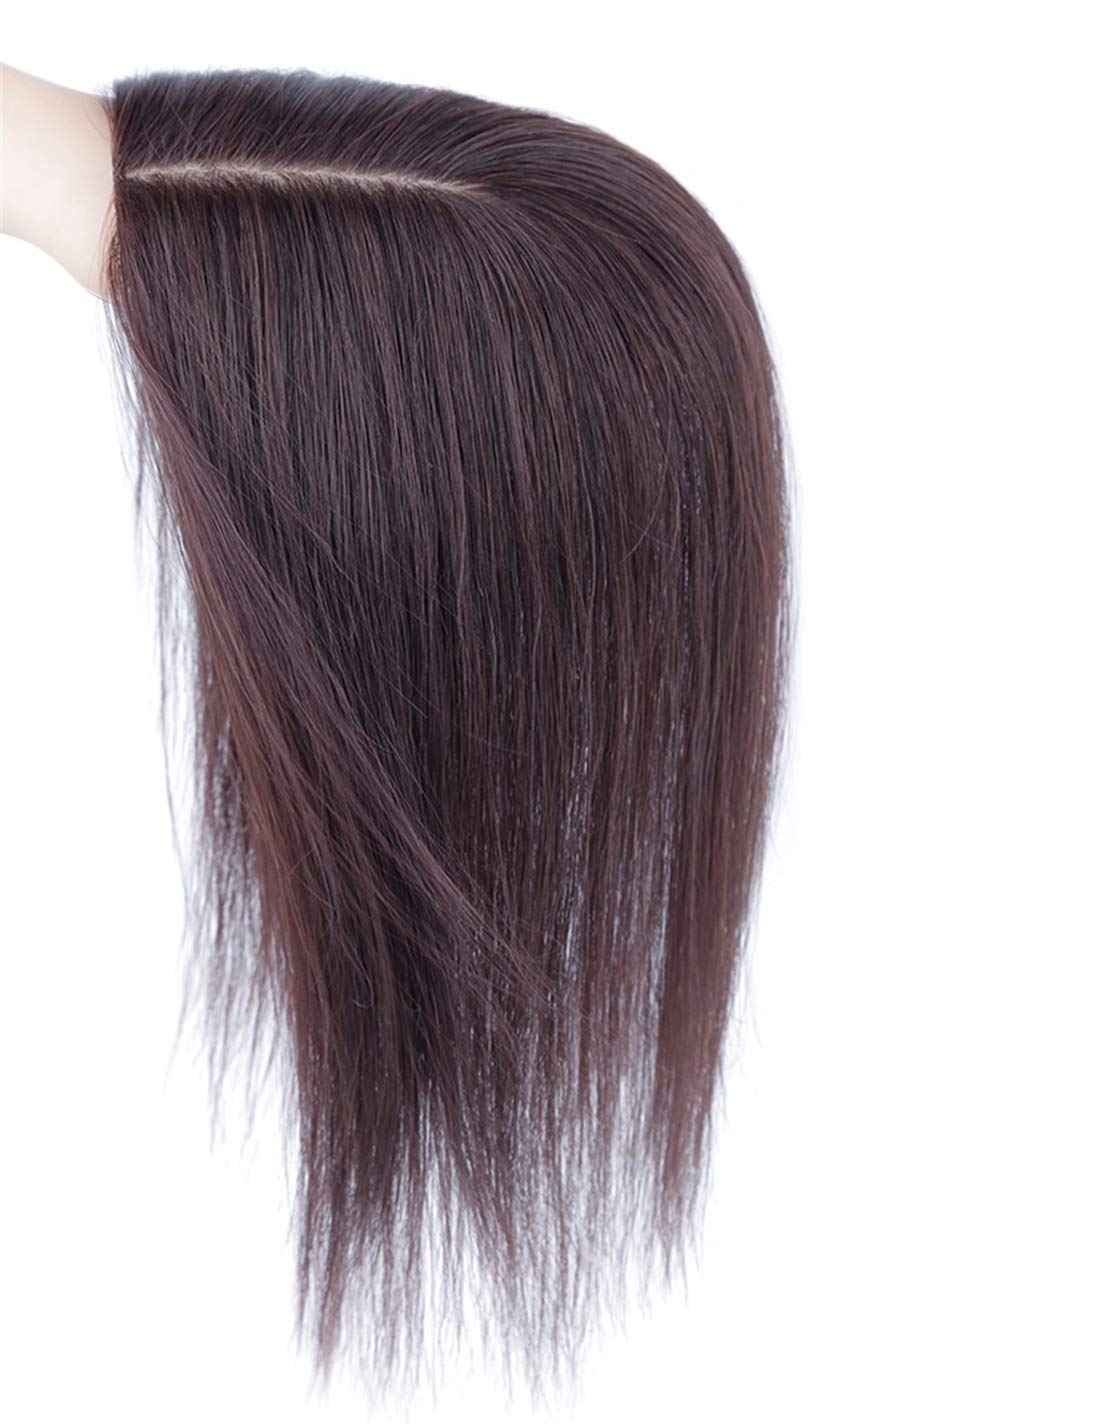 Natural Silk Base Parting Human Hair Toppers for Women with Grey and Thinning Hair, 5 Inch x 5.5 Inch Crown Topper, Left Part 12.6 Inch 9